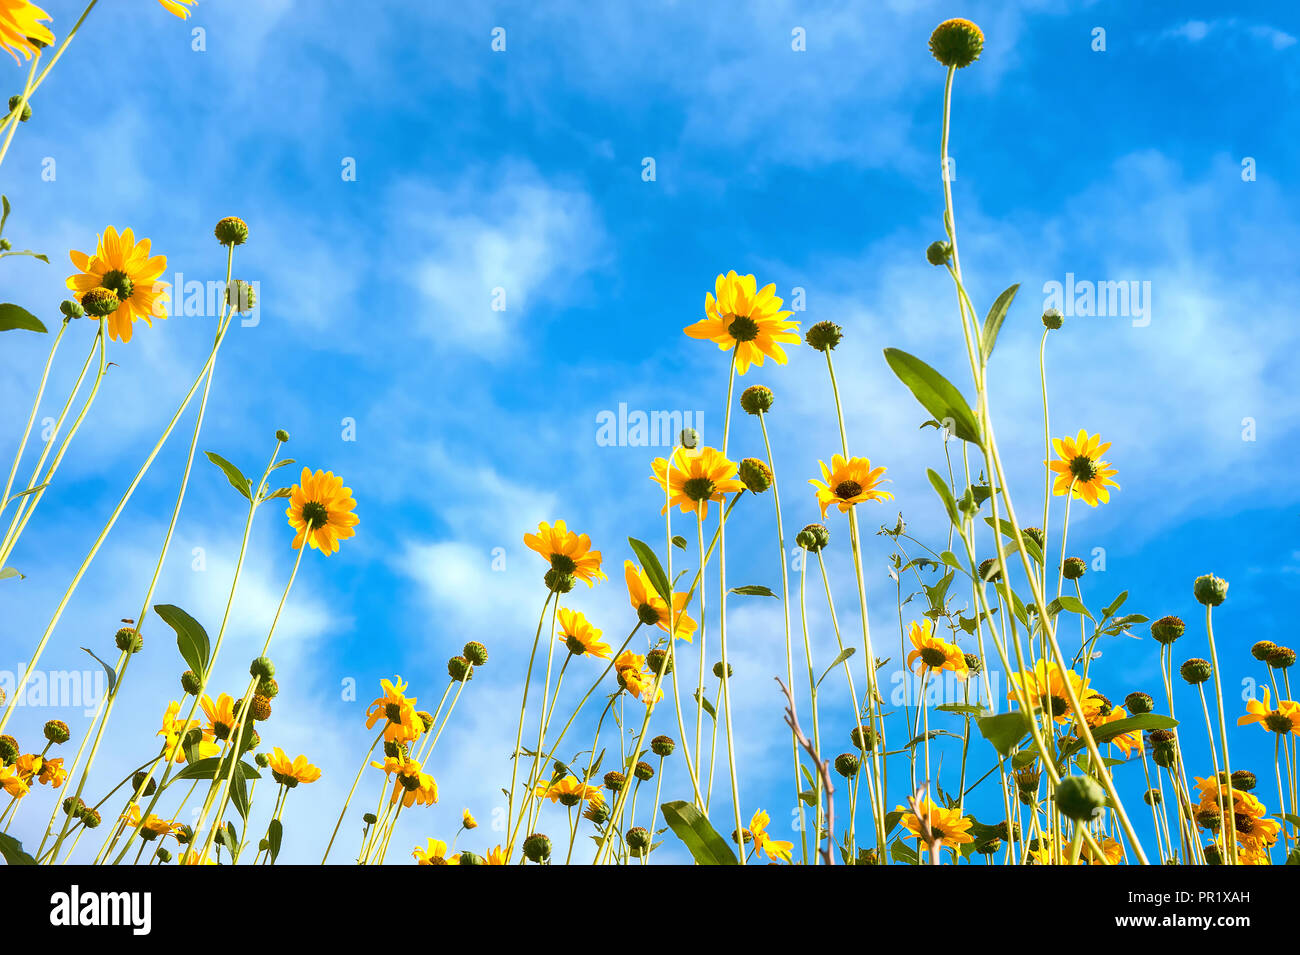 Yellow daisies against blue sky background - Stock Image